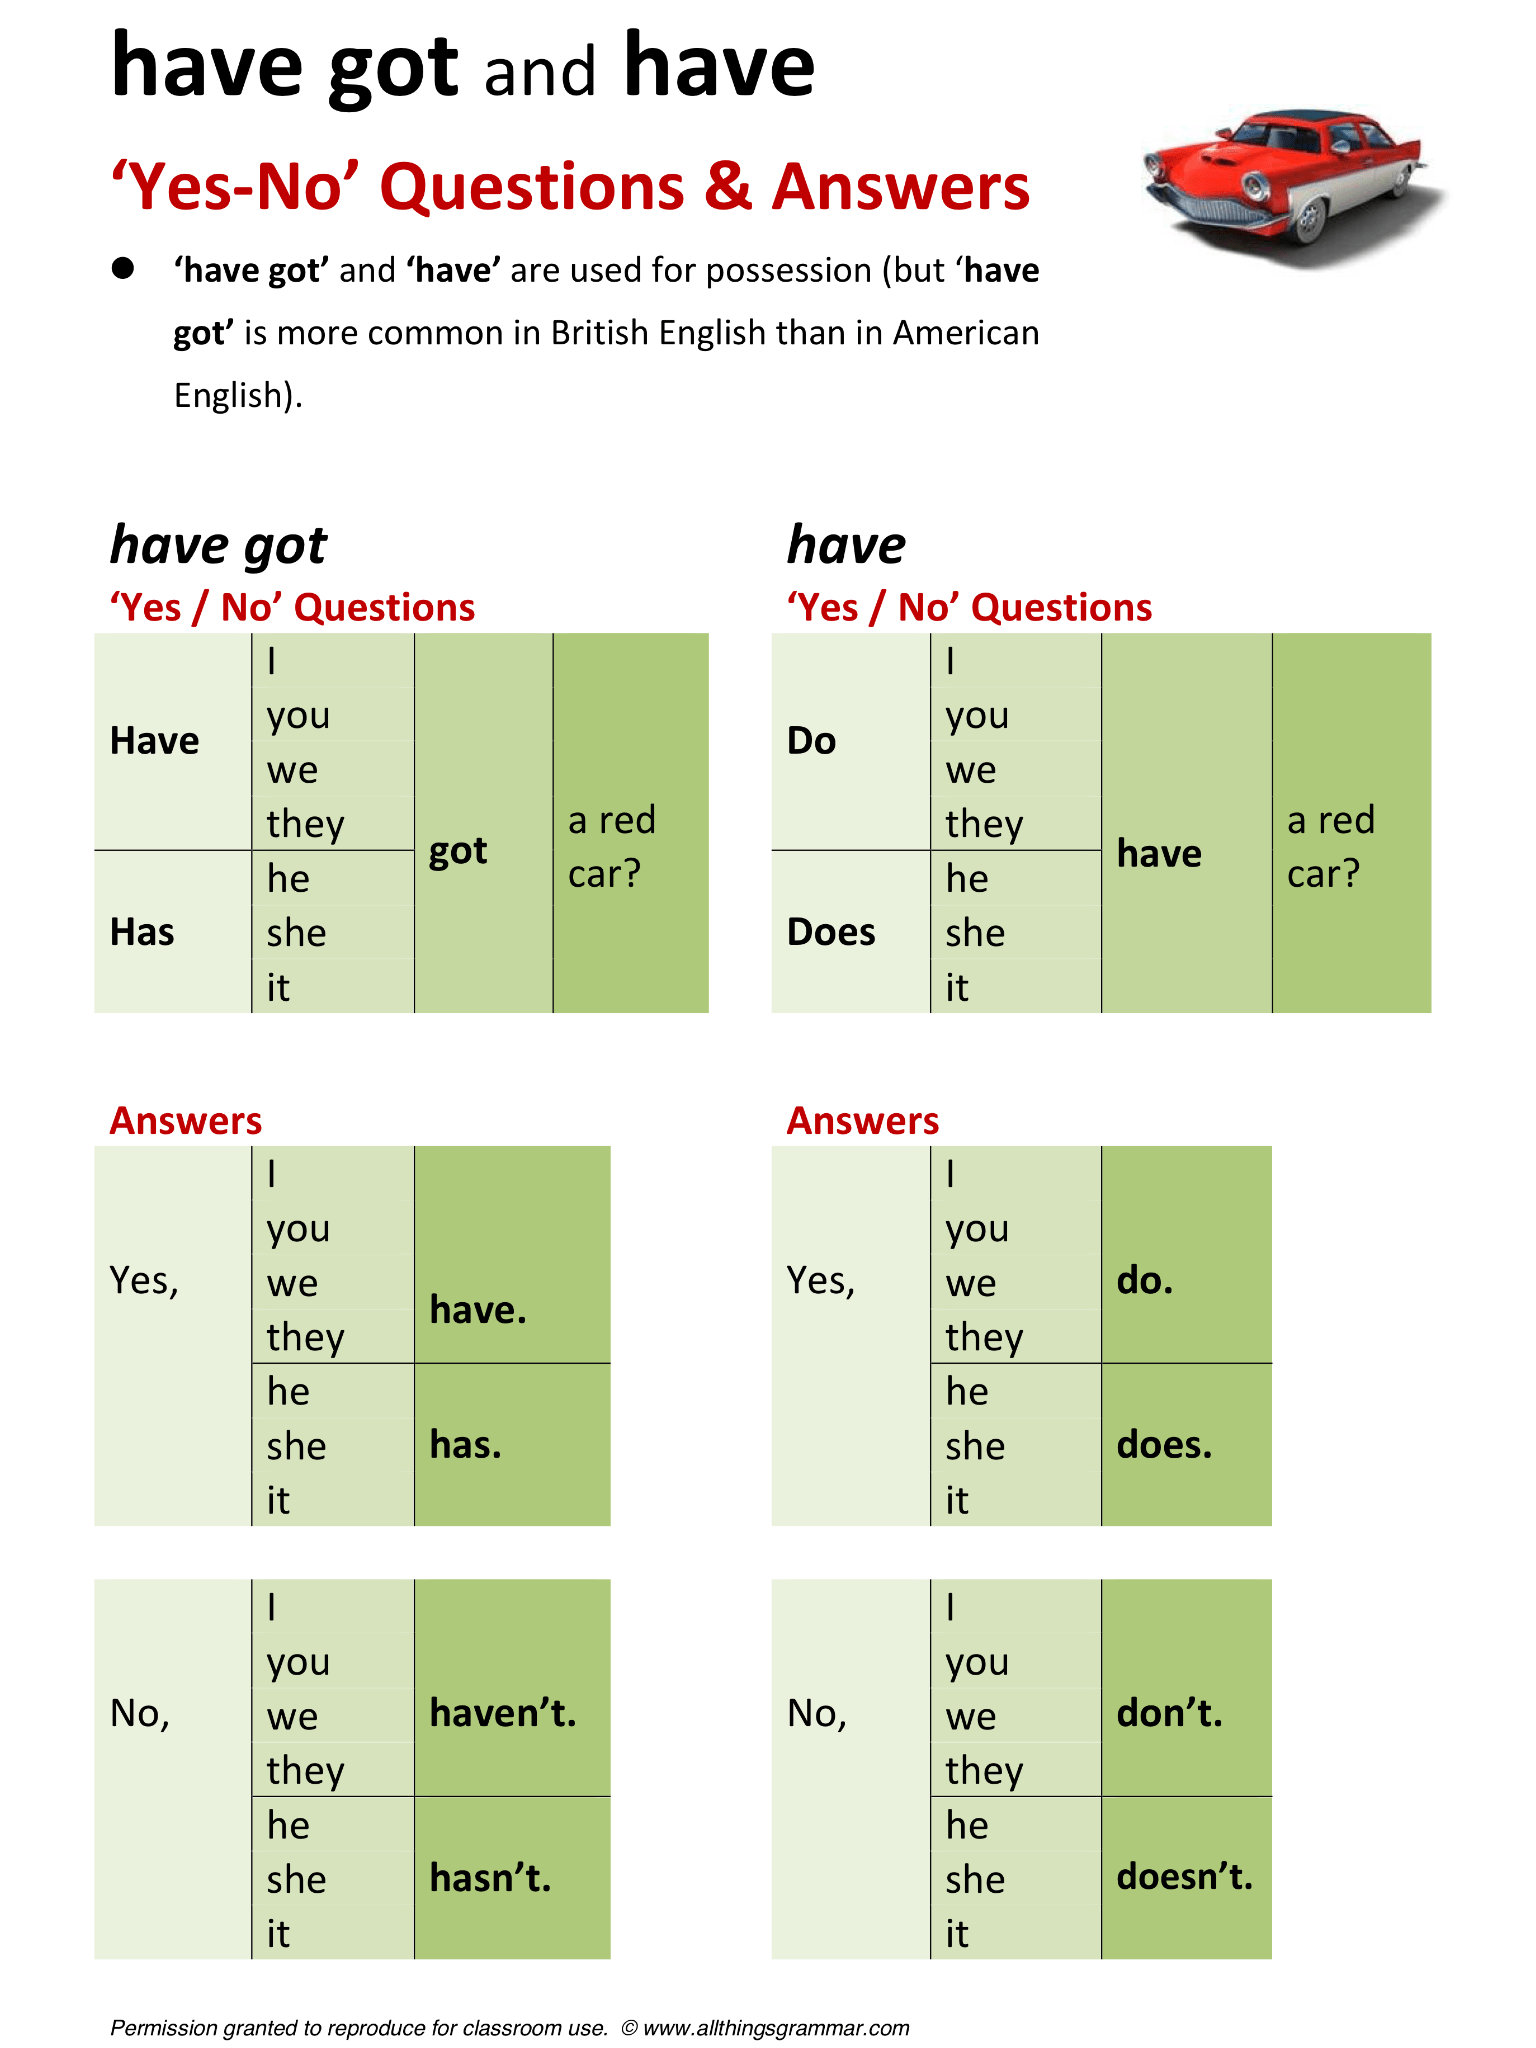 English Grammar Have Got And Have Questions Amp Answers Lthingsgrammar Have